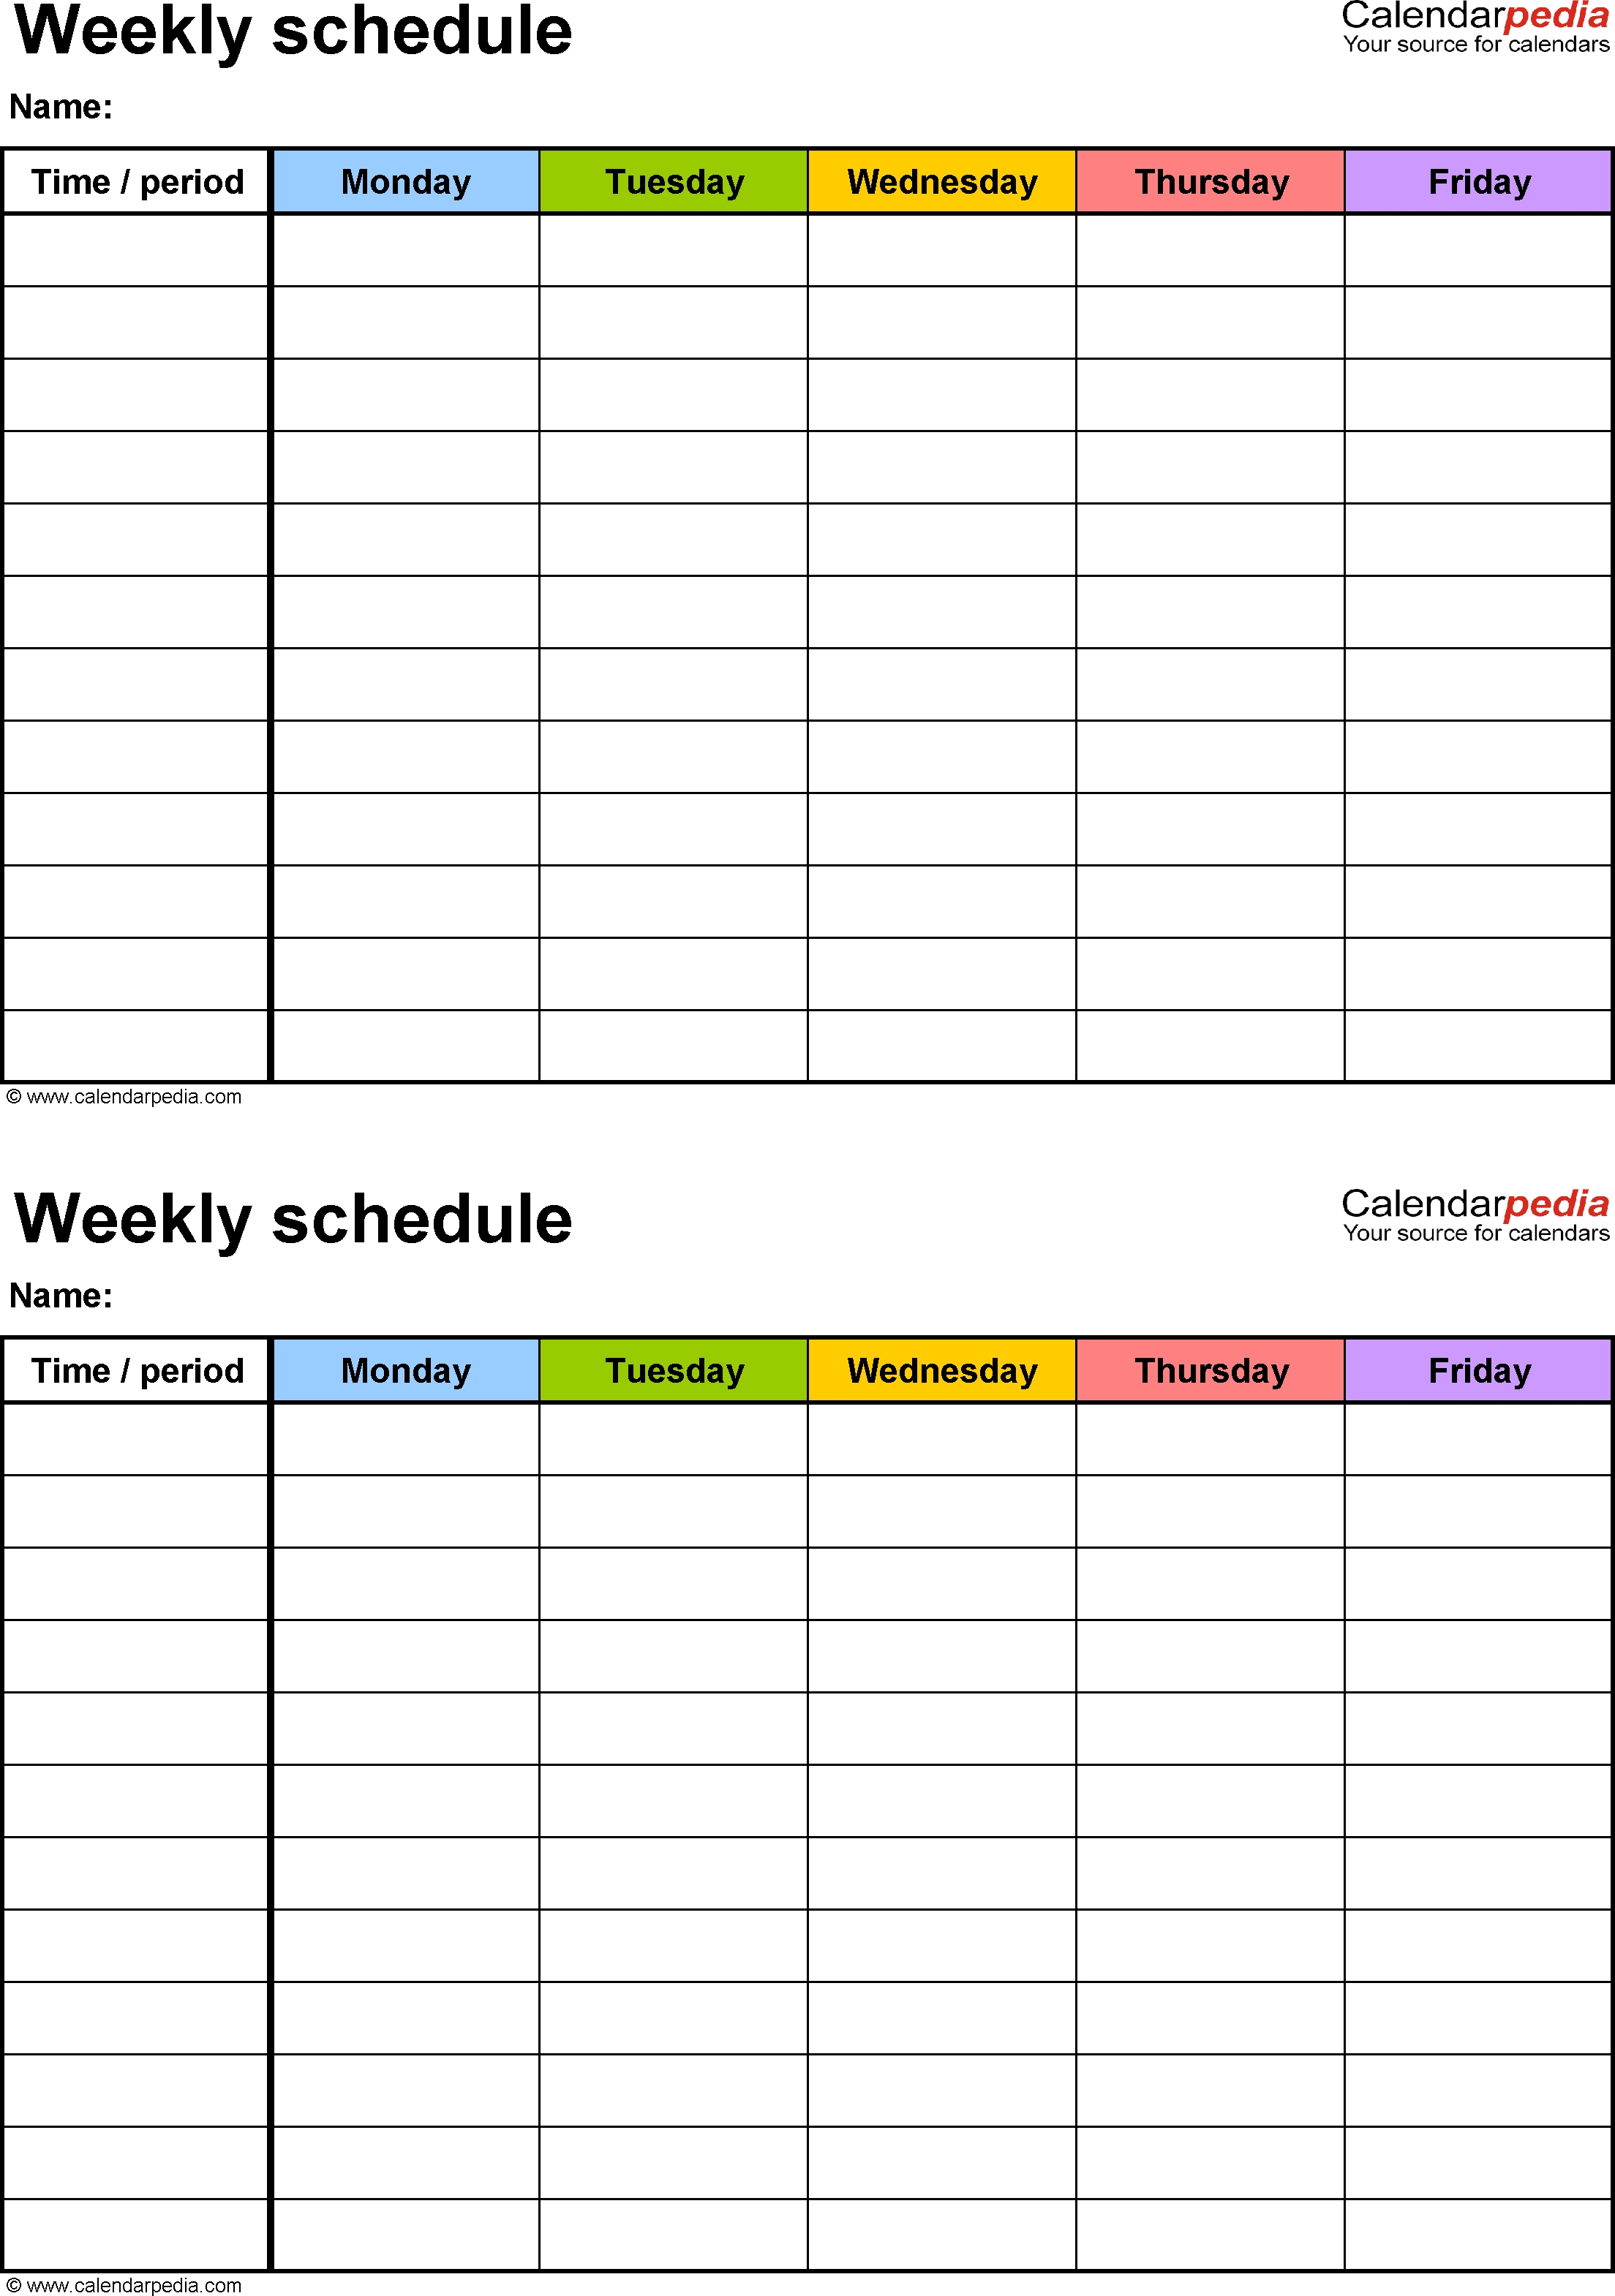 Free Weekly Schedule Templates For Word - 18 Templates regarding Monday - Friday Planner Template